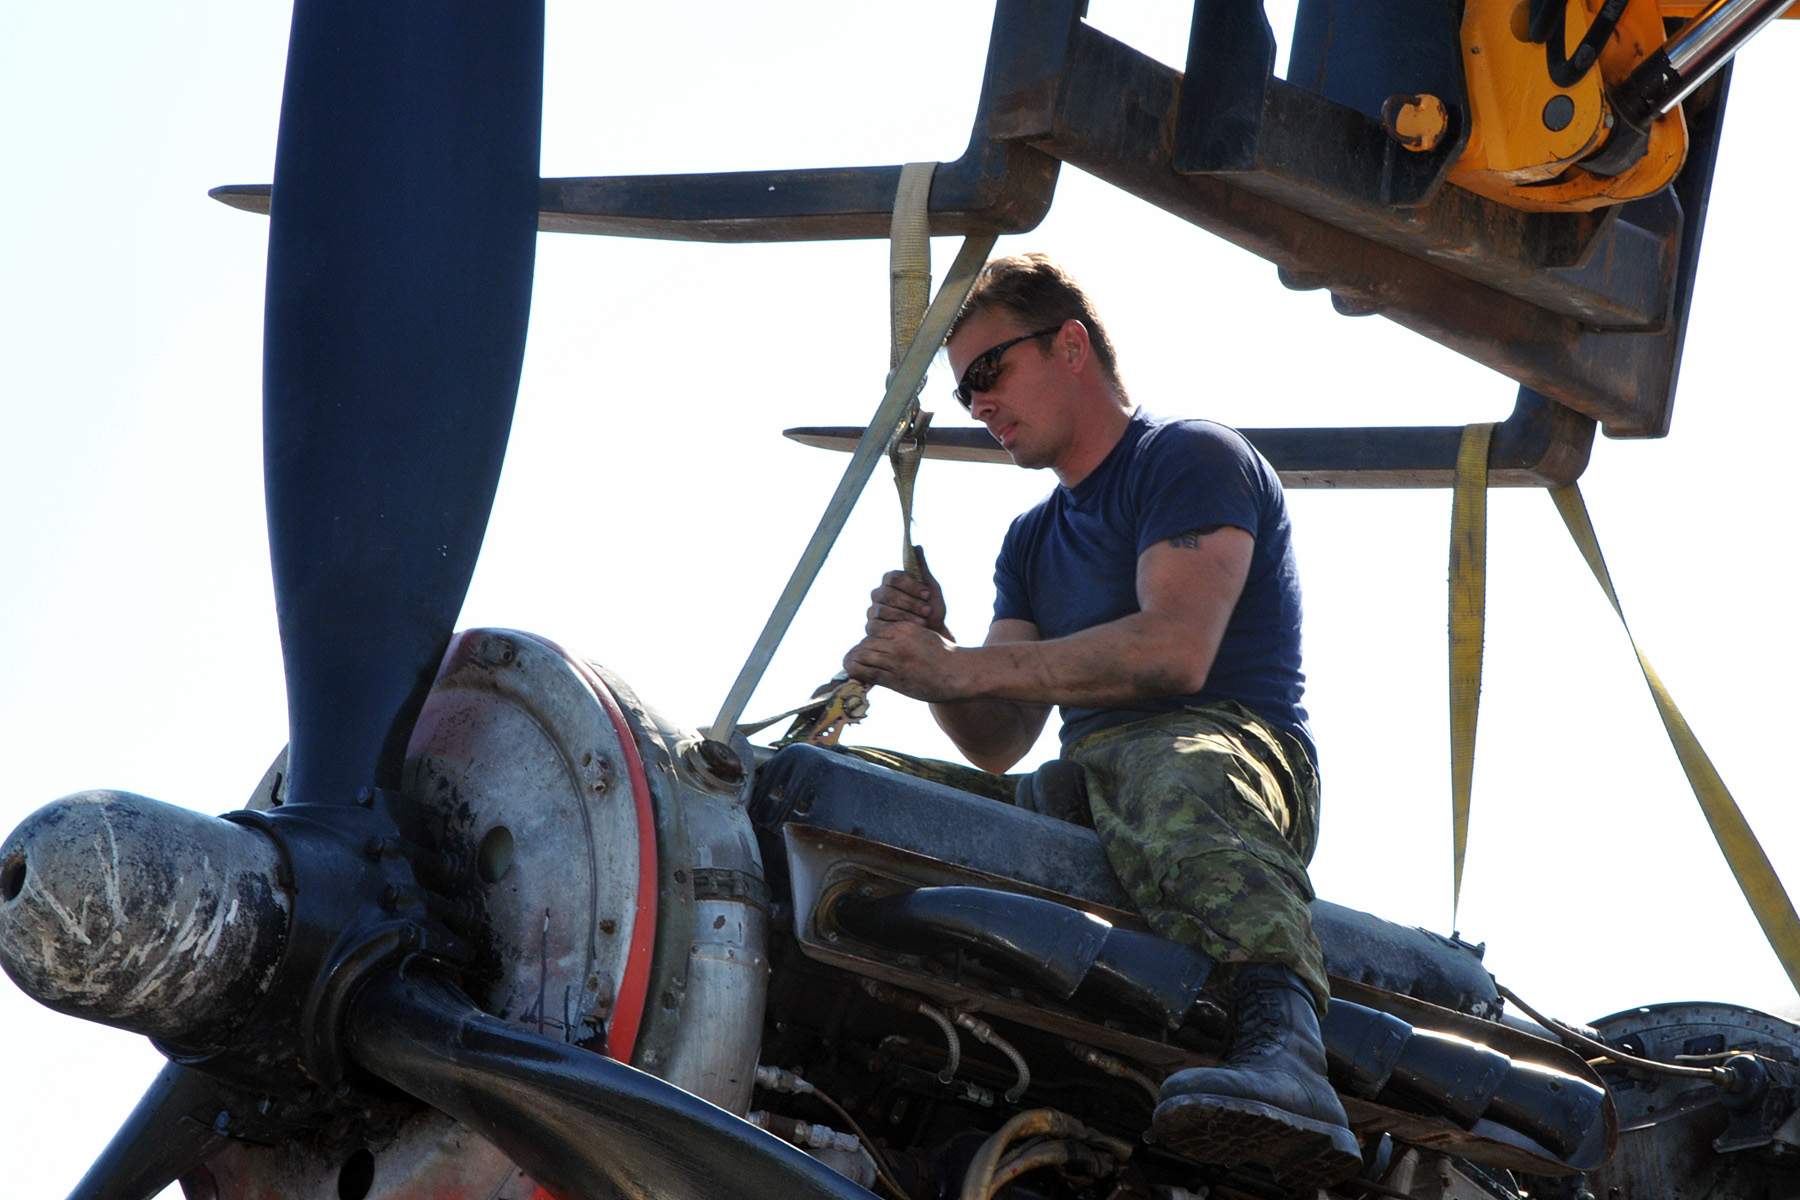 An RCAF technician from ATESS tightens straps on one of KB882's engines in preparation for its removal. PHOTO: Warrant Officer Fran Gaudet